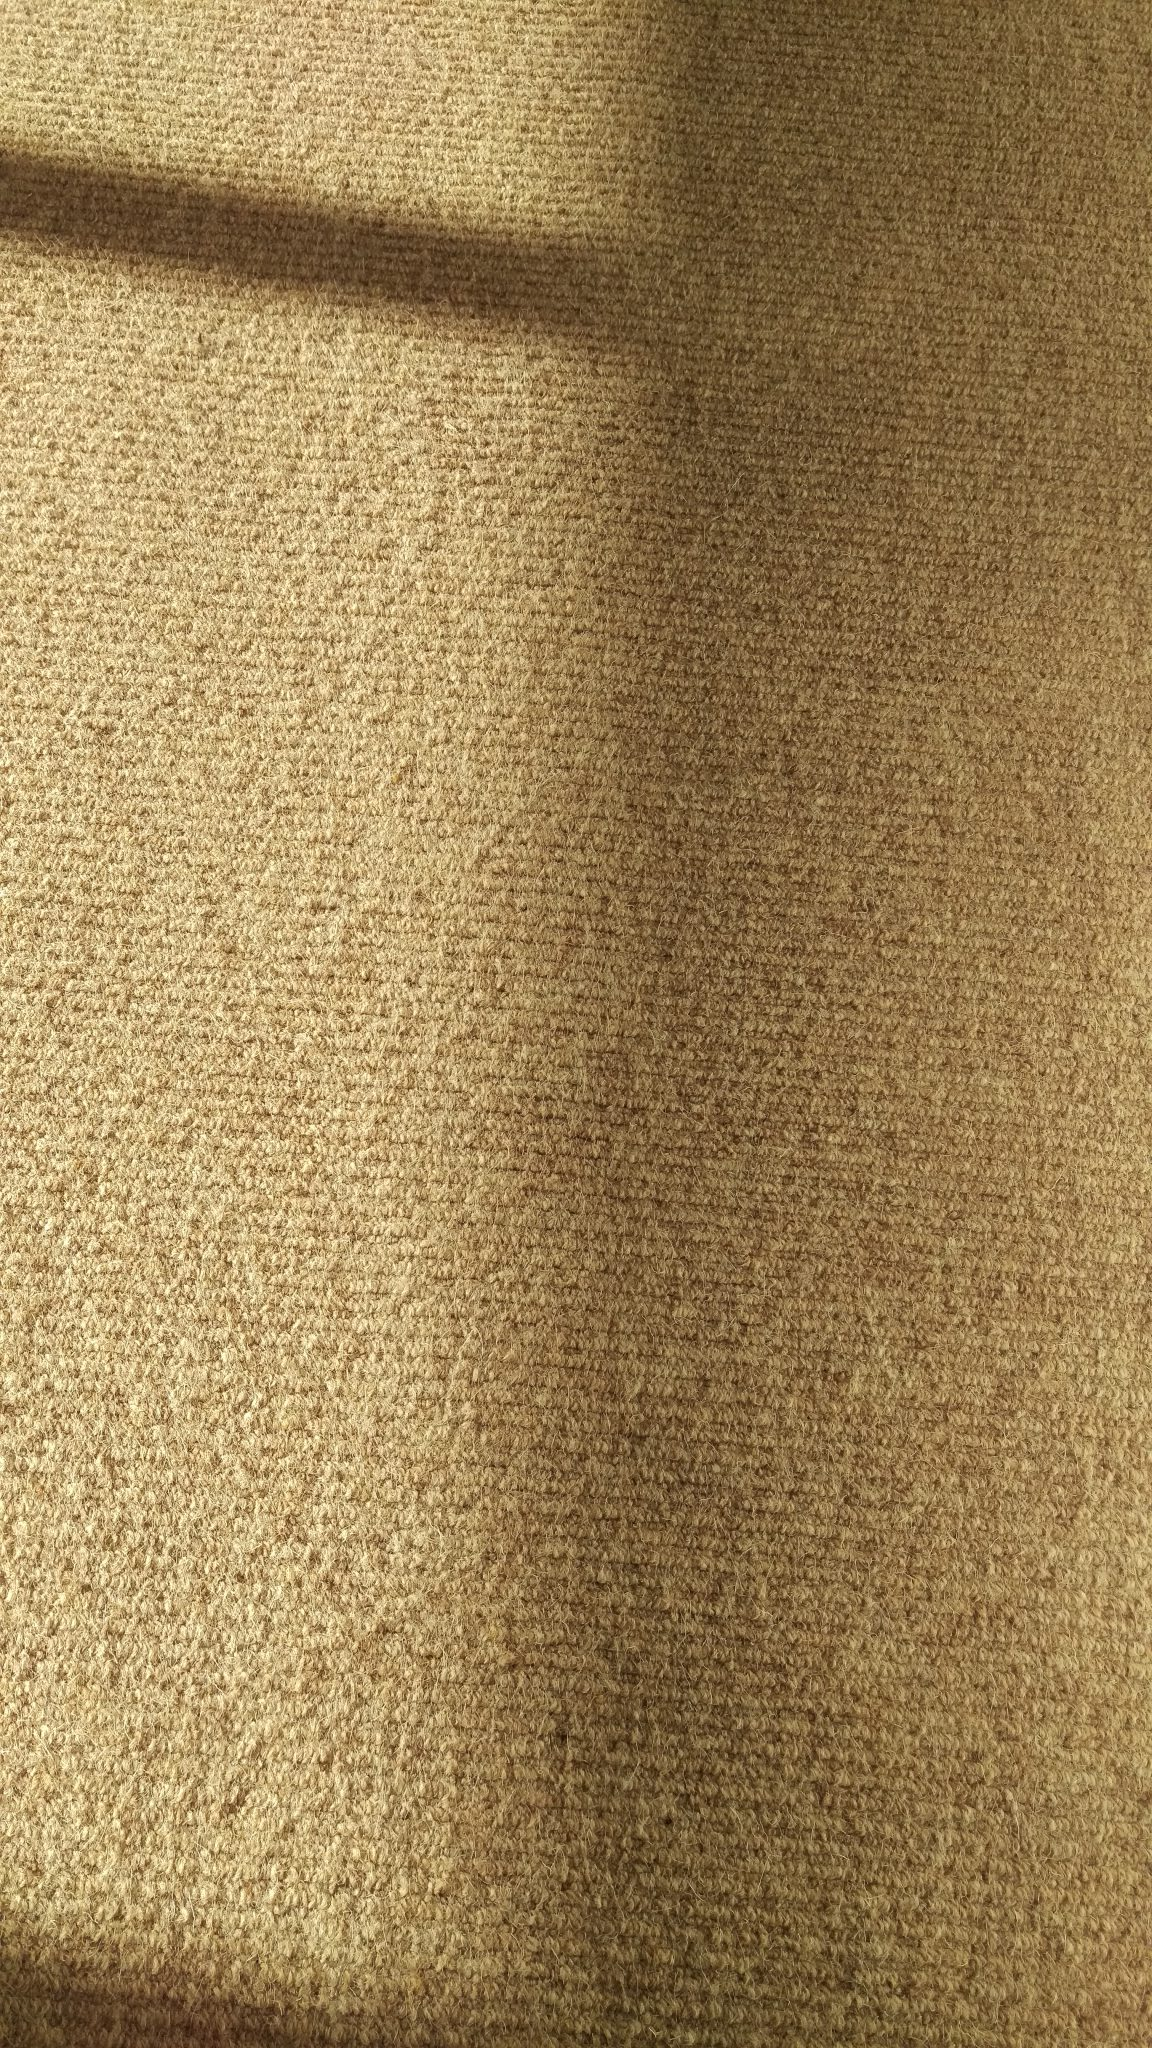 Carpet Cleaning In Coulsdon Cr5 Postcode Area London